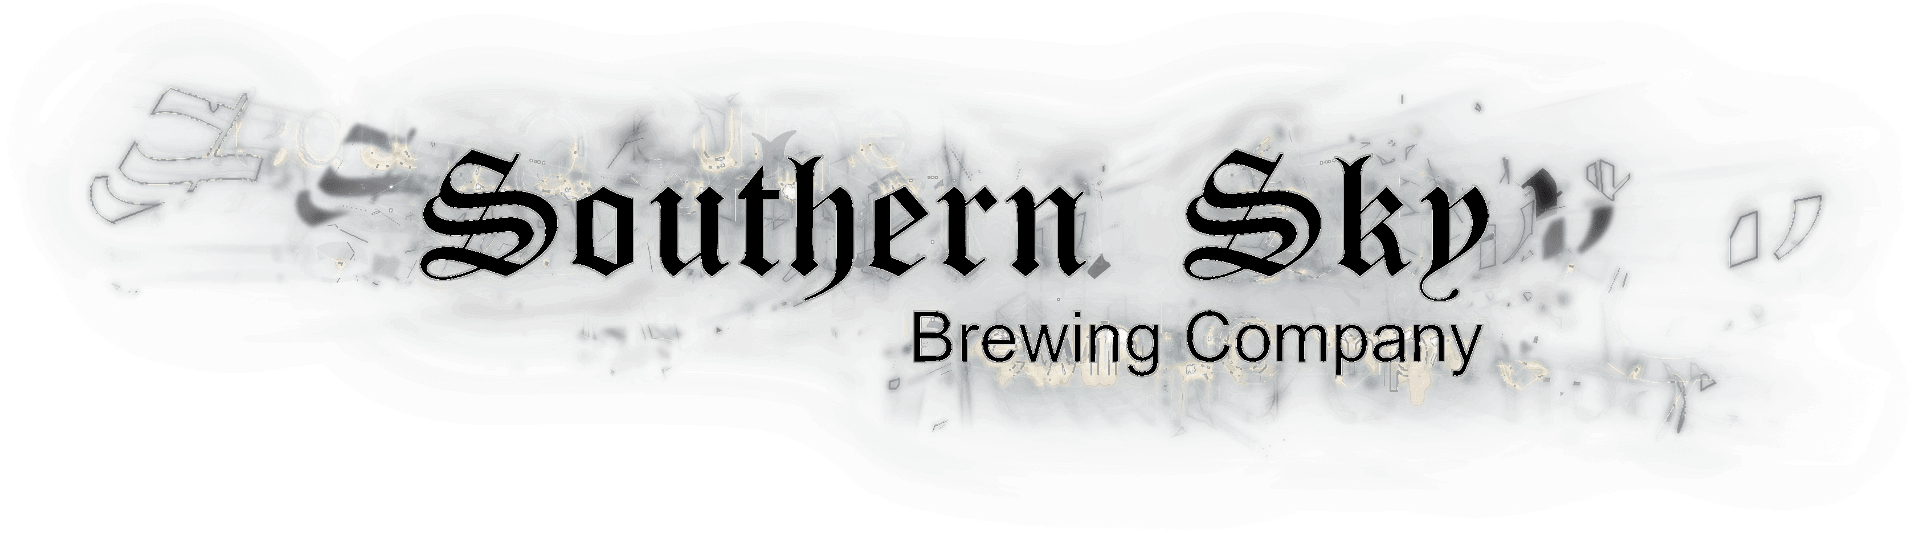 Image result for southern sky brewery